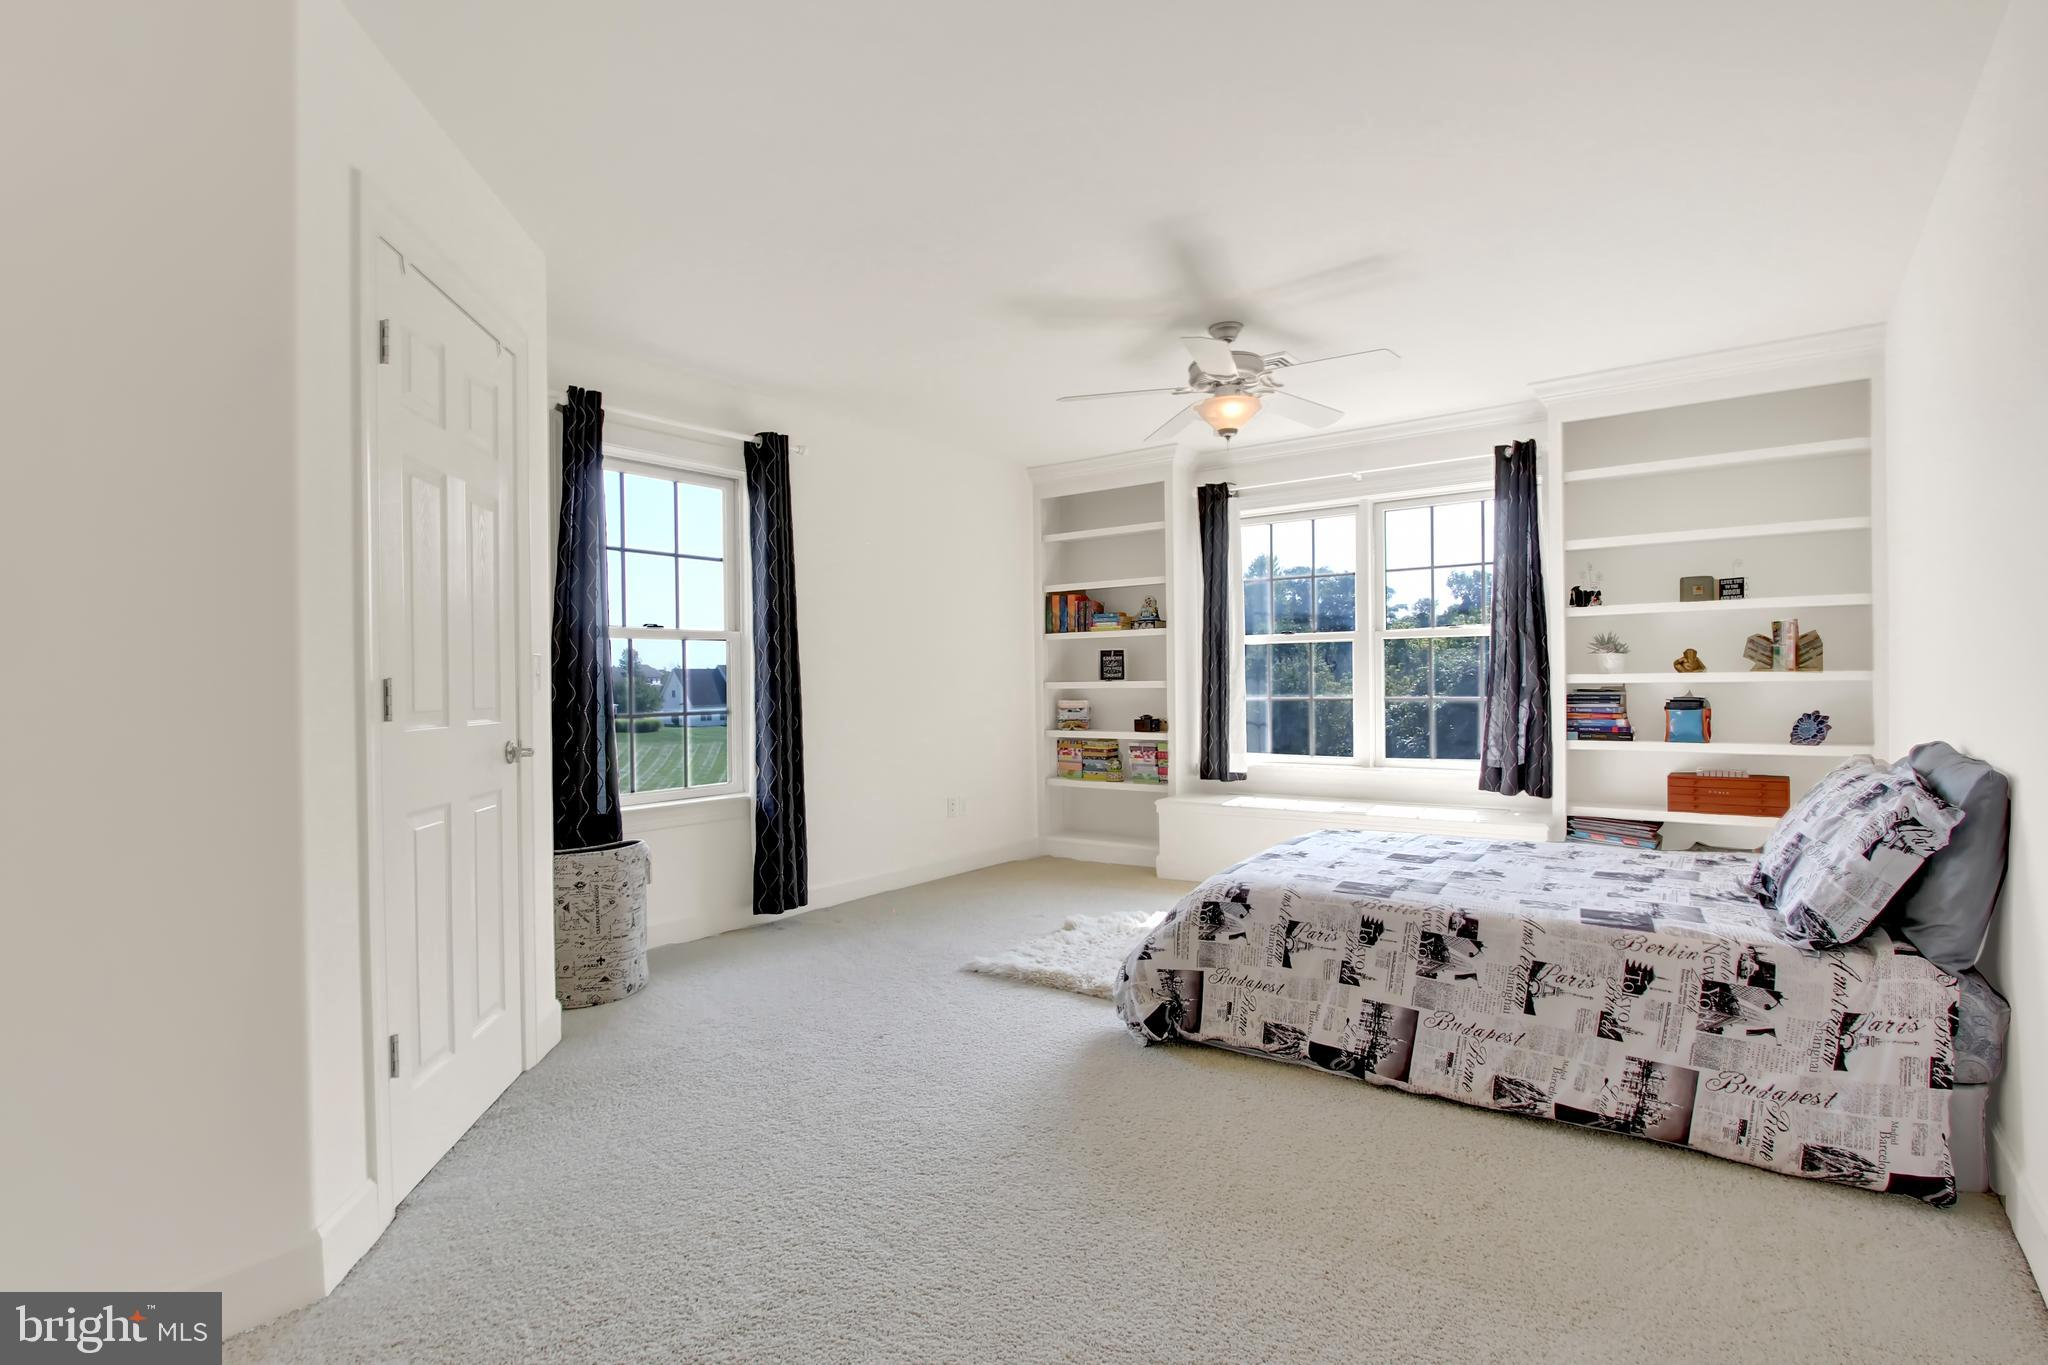 Bedroom with built-in shelving and walk-in closet